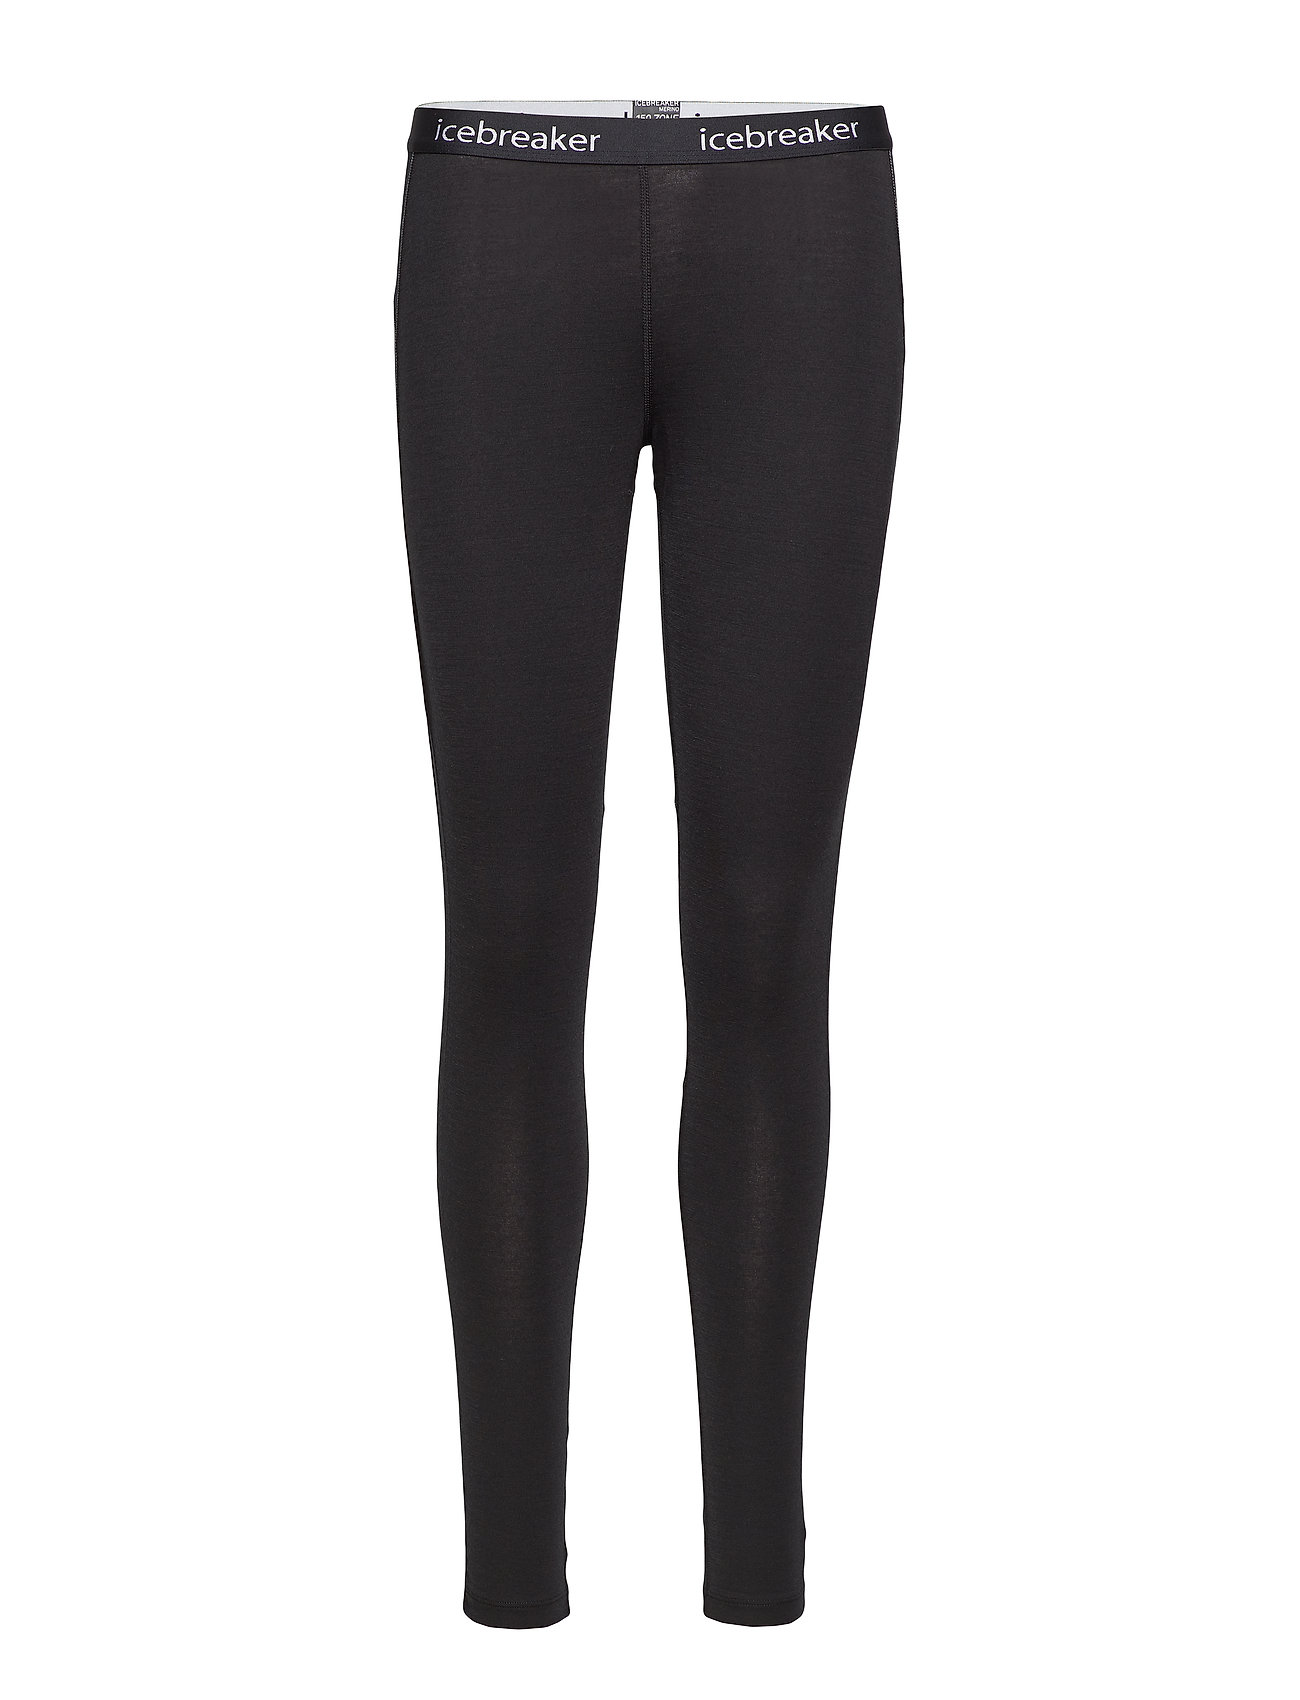 Icebreaker Wmns 150 Zone Leggings - BLACK/MINERAL